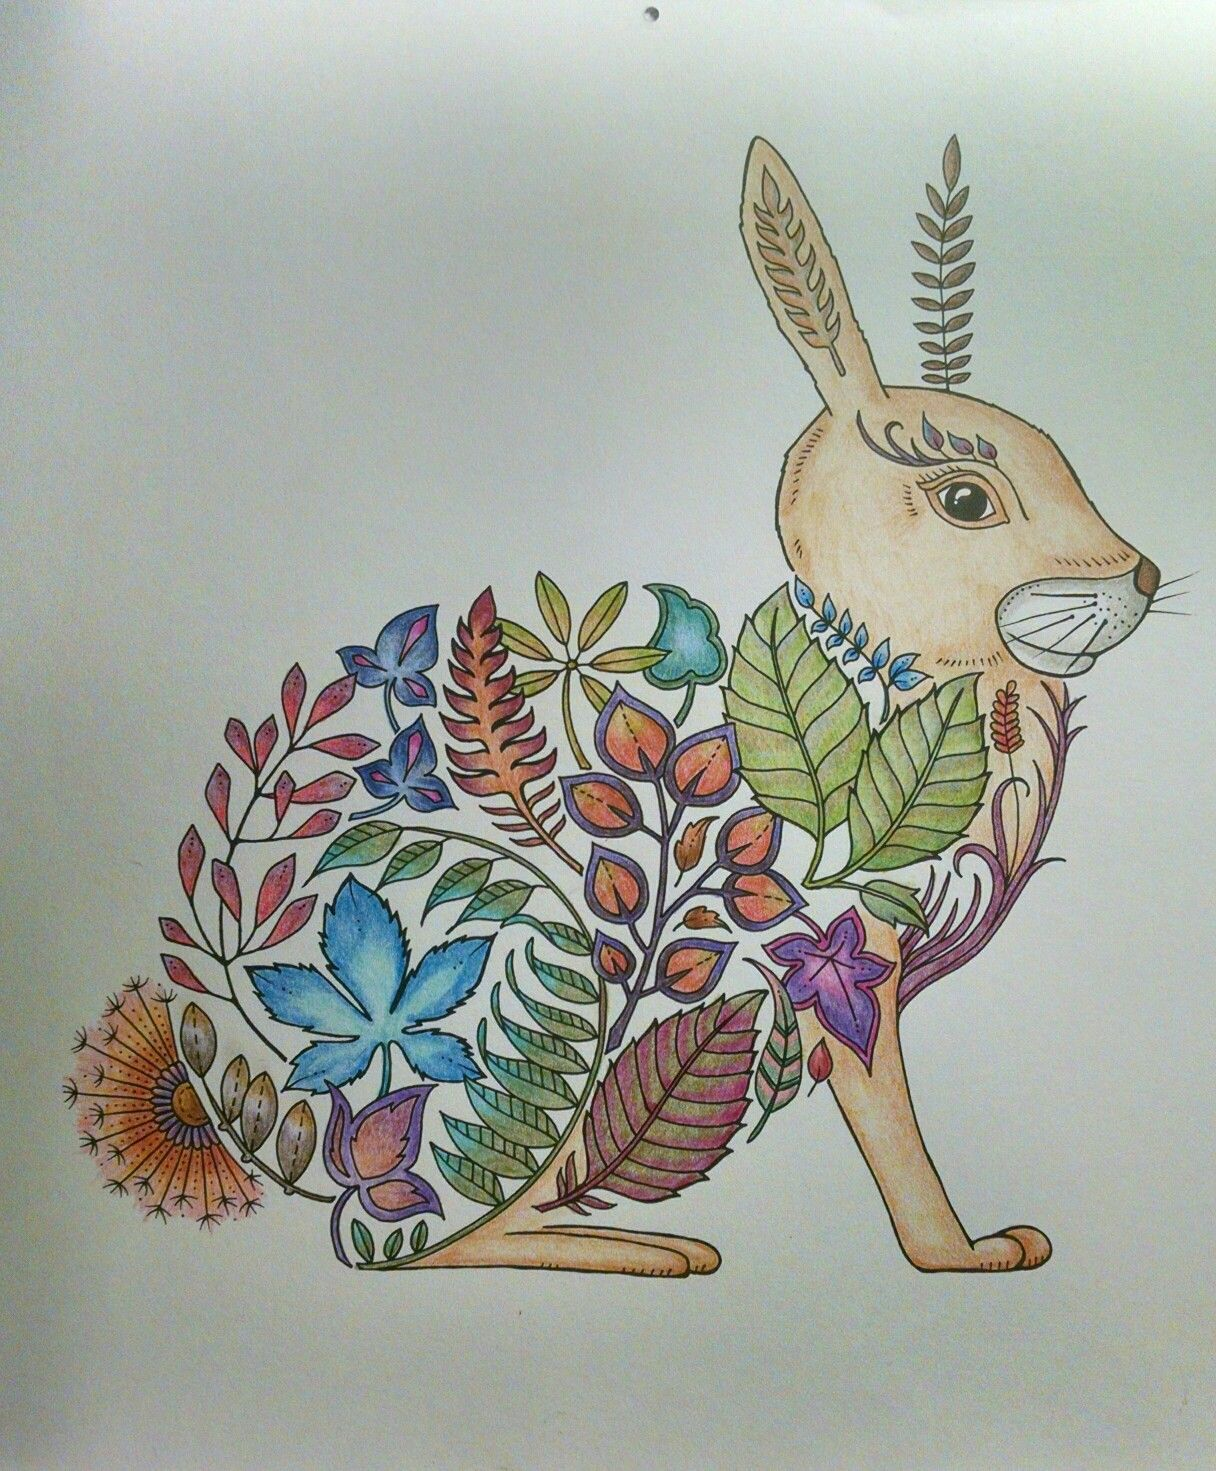 Johanna Basford Enchanted Forest Rabbit By Wendy Enchanted Forest